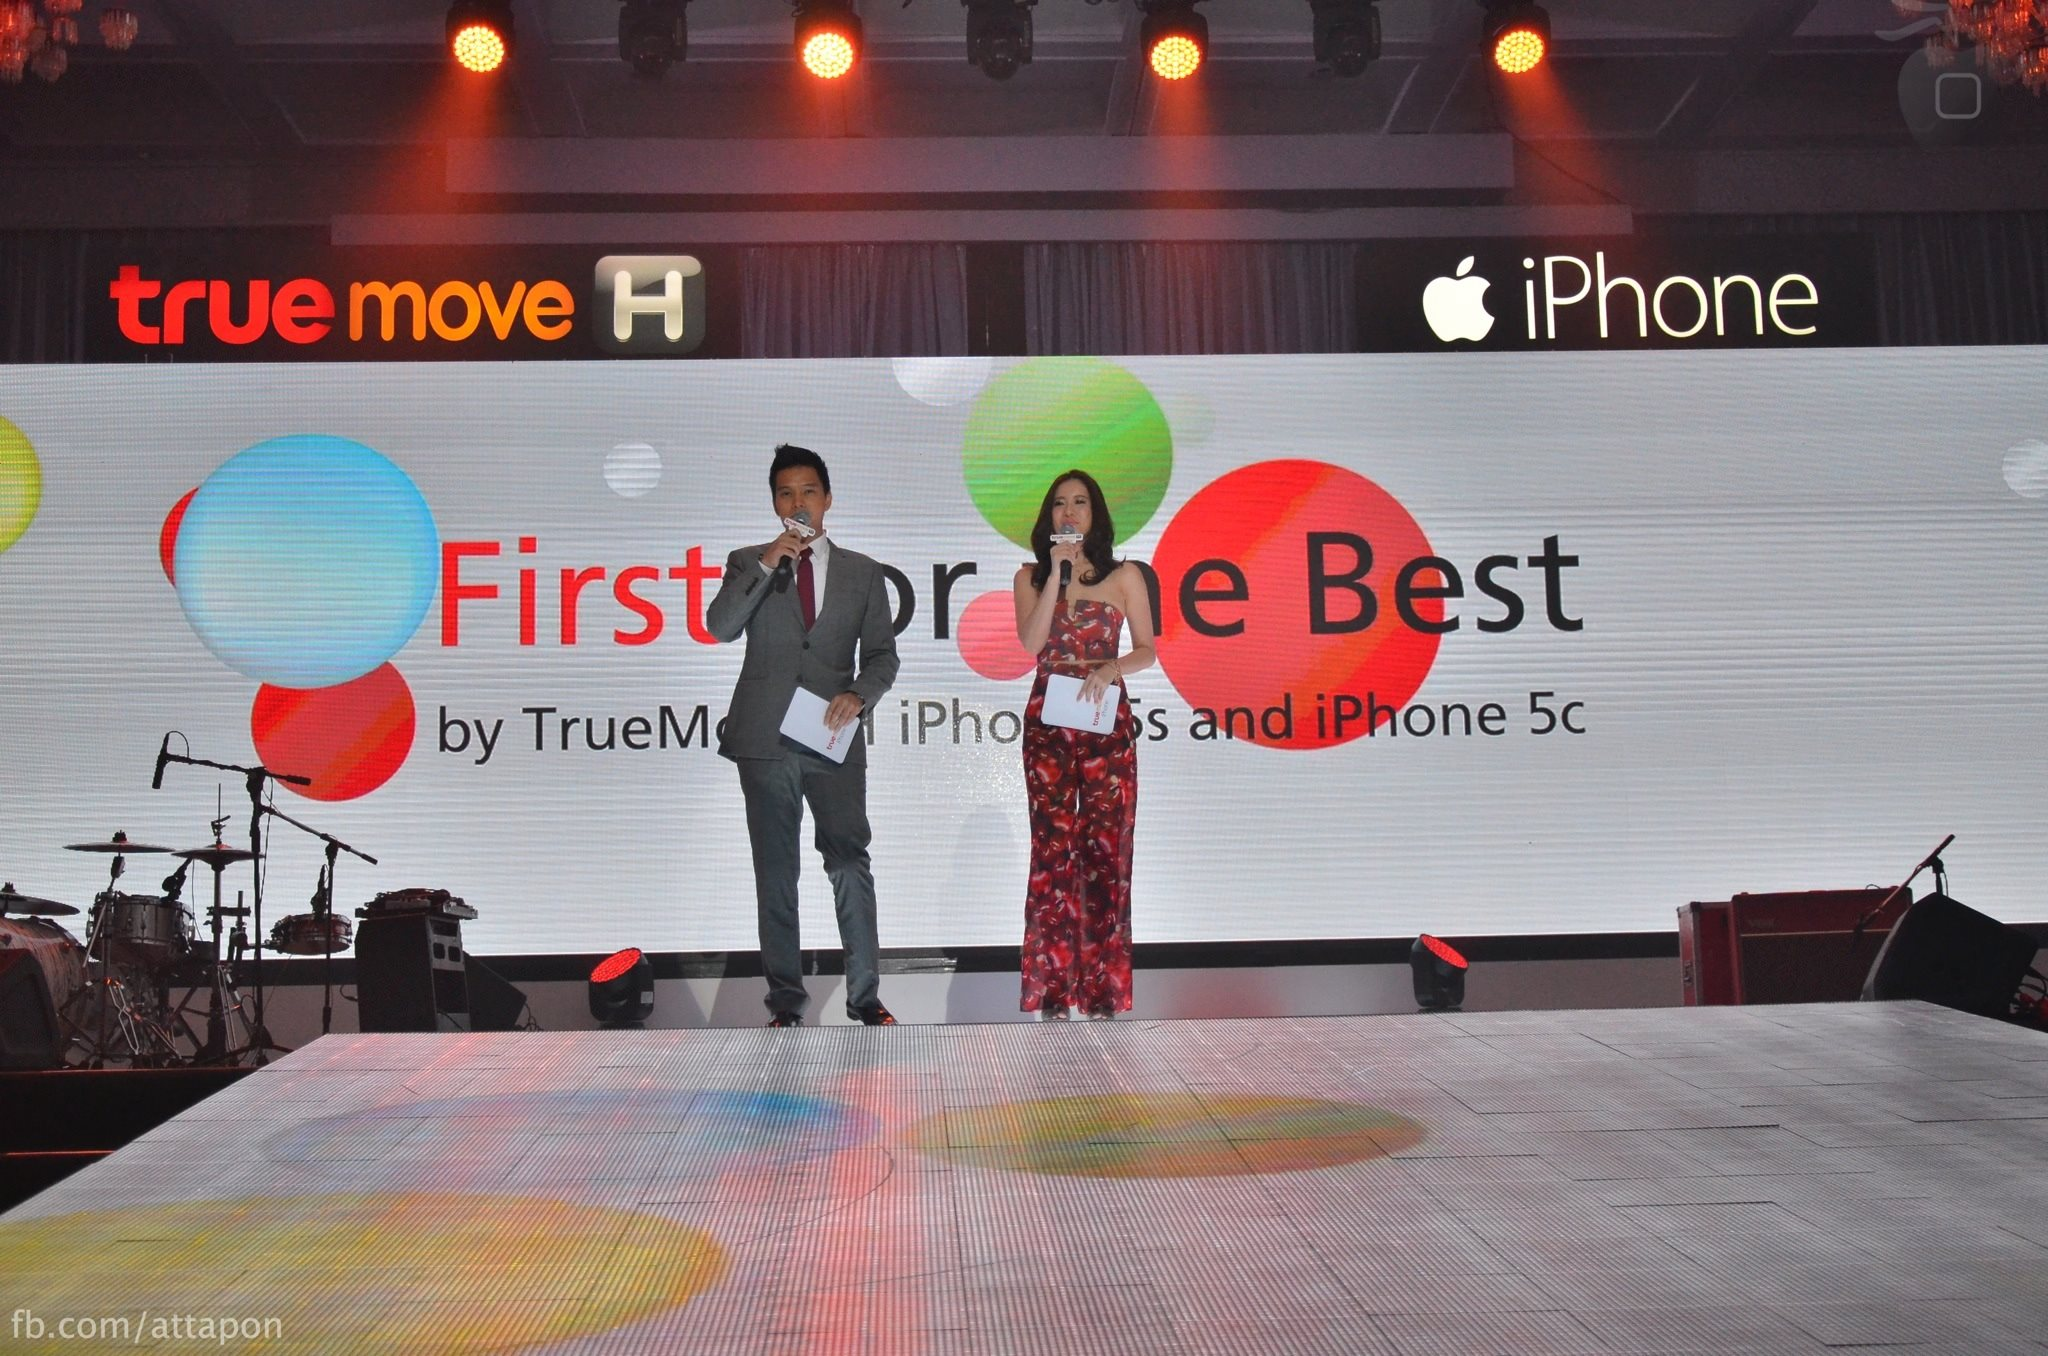 truemove h iphone 5s launch